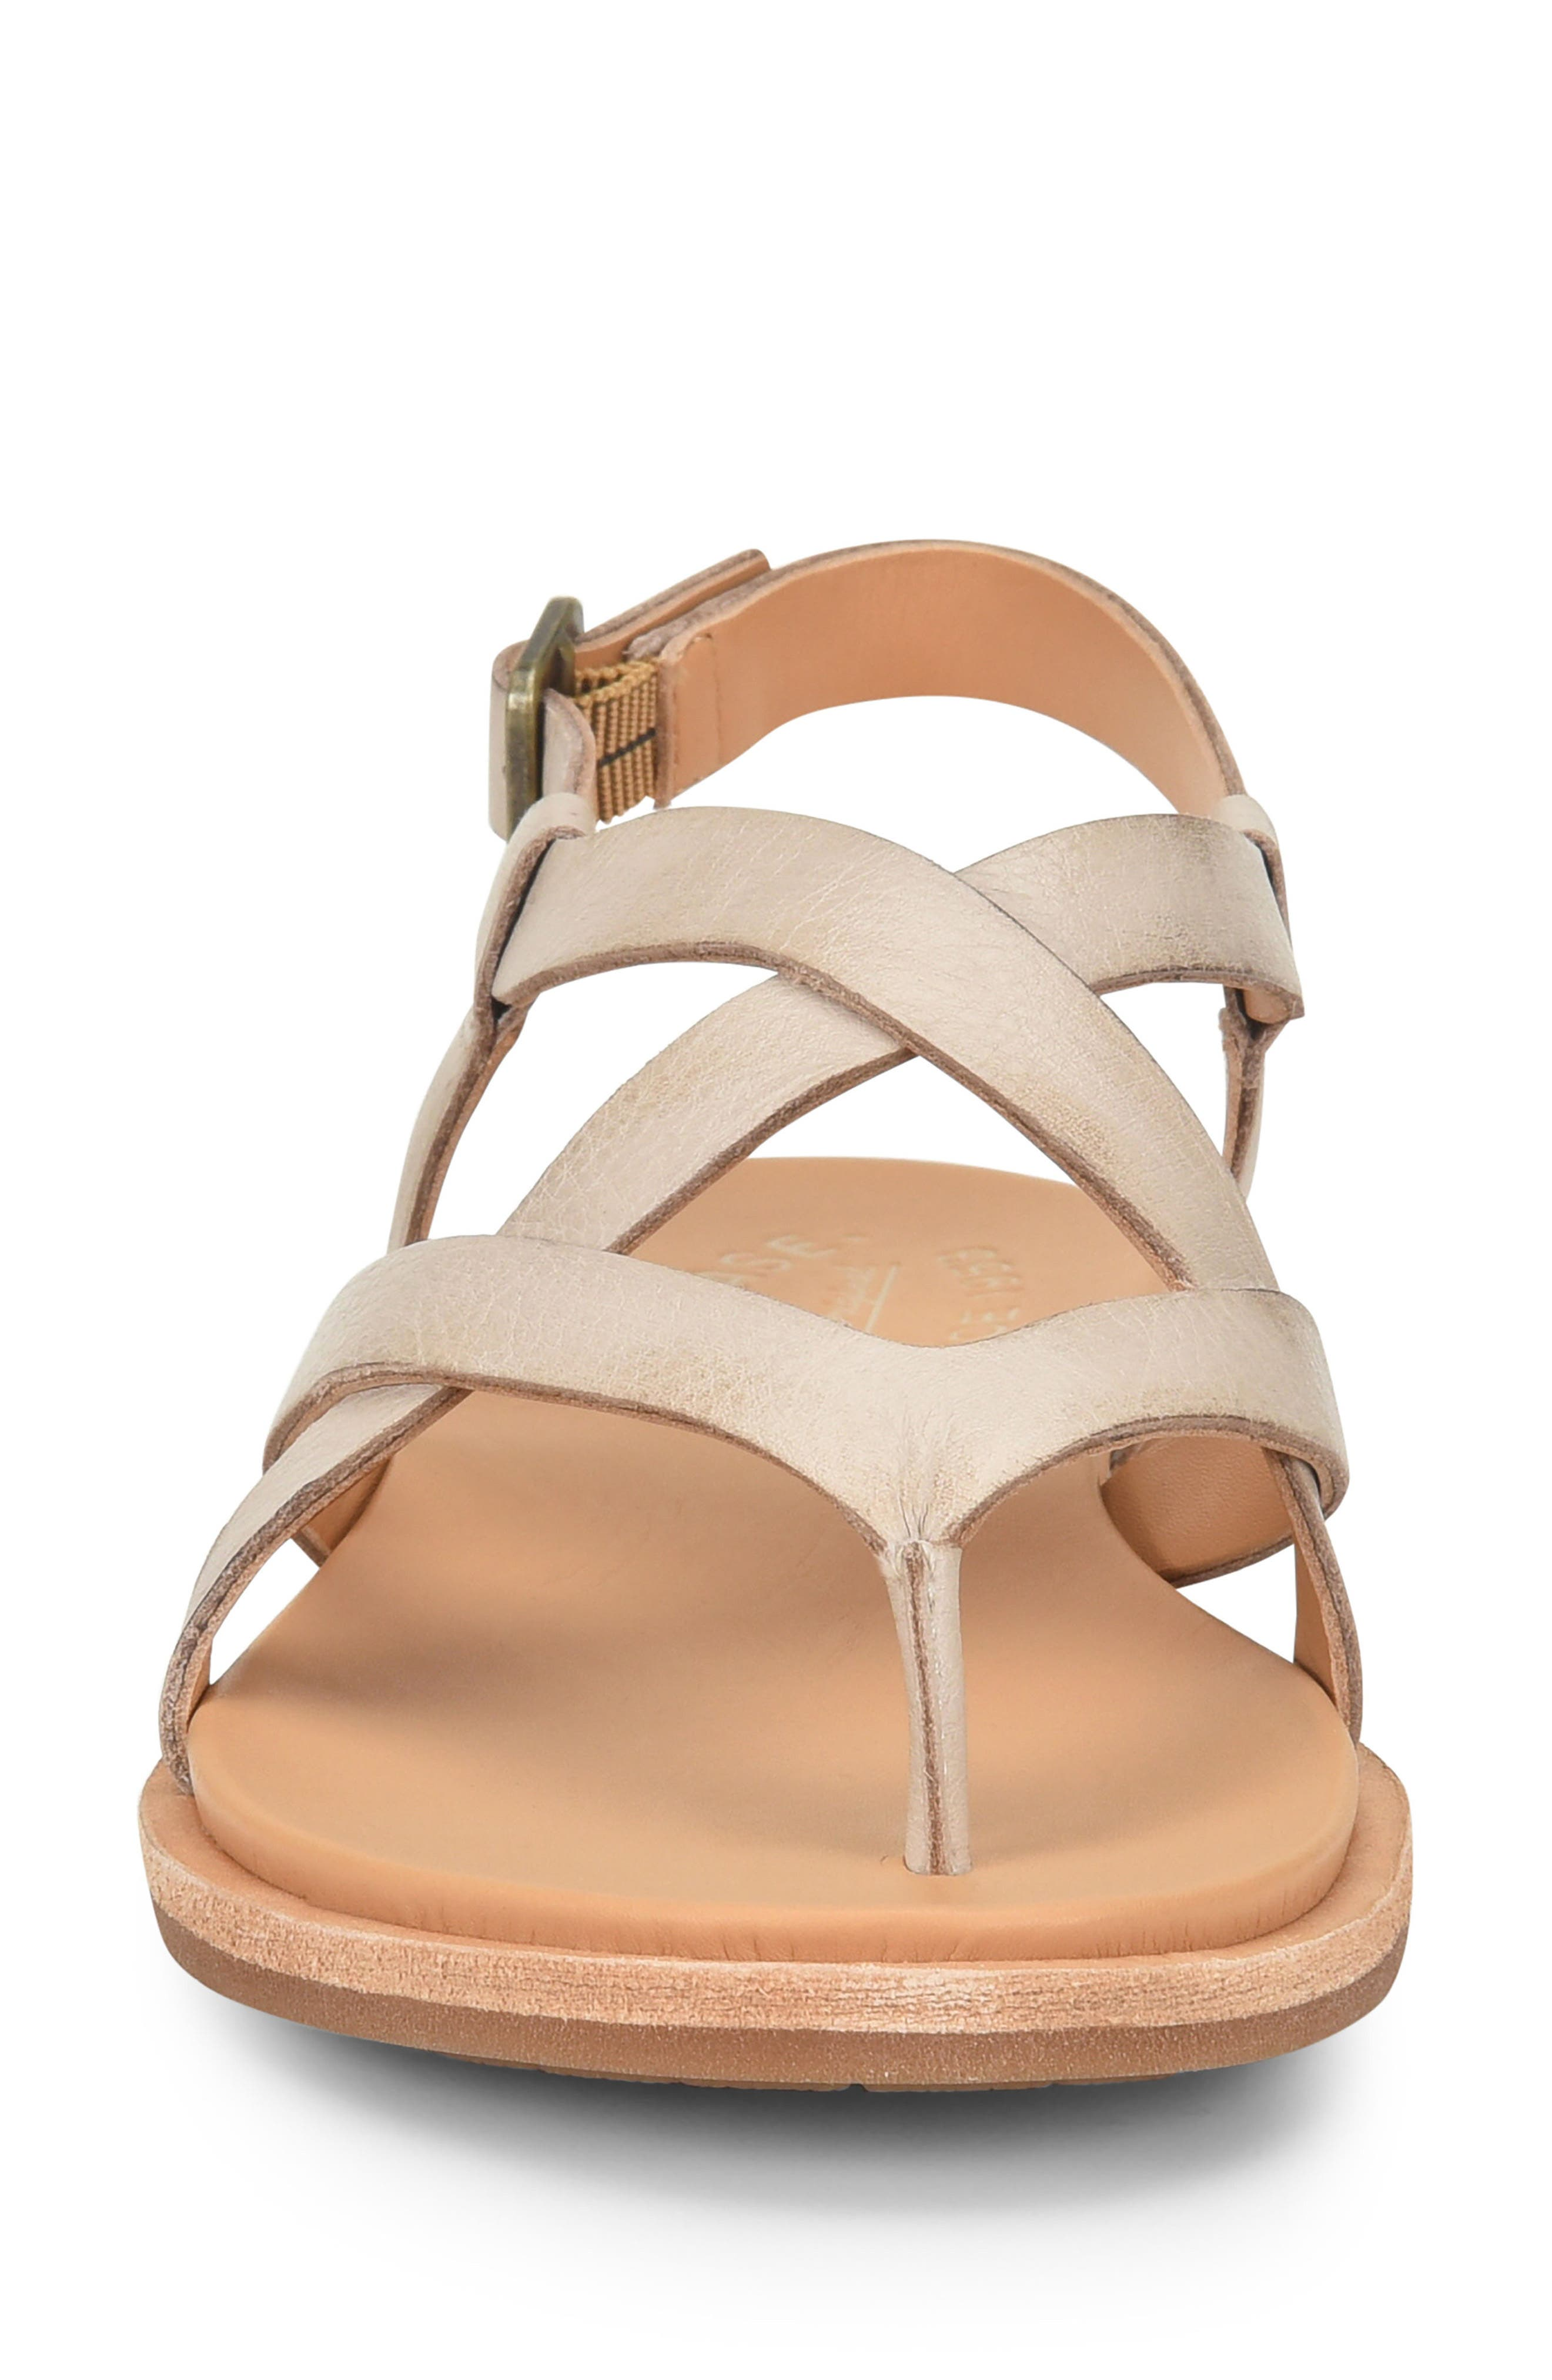 KORK-EASE<SUP>®</SUP>, Yarbrough Sandal, Alternate thumbnail 4, color, LIGHT GREY LEATHER